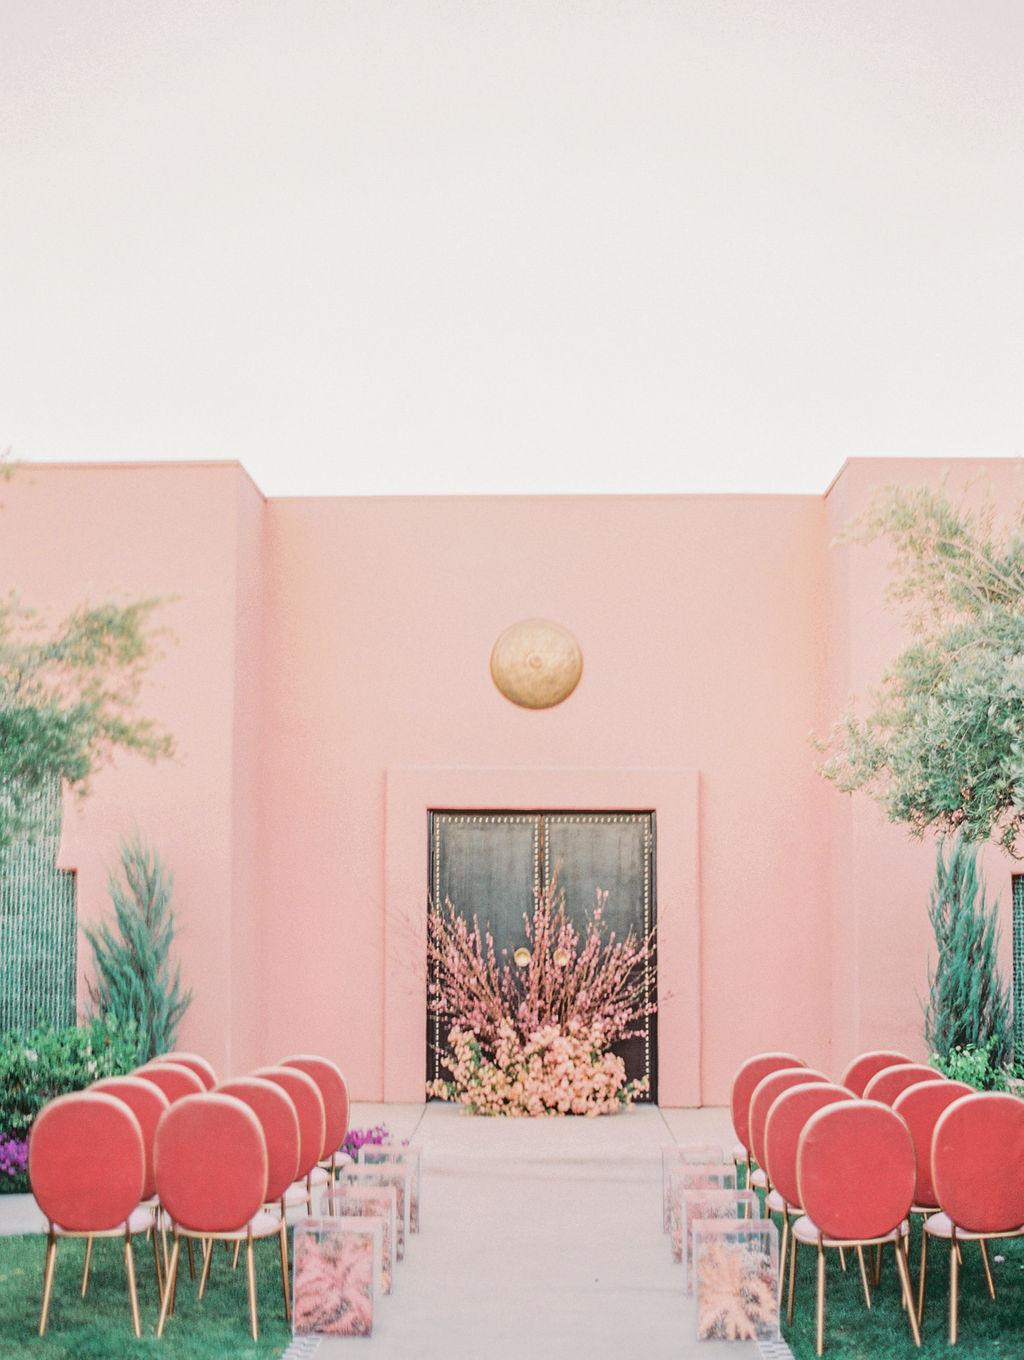 pink velvet ceremony chairs tropical wedding ceremony https://itgirlweddings.com/styled-shoot-with-pink-tropical-wedding-vibes/